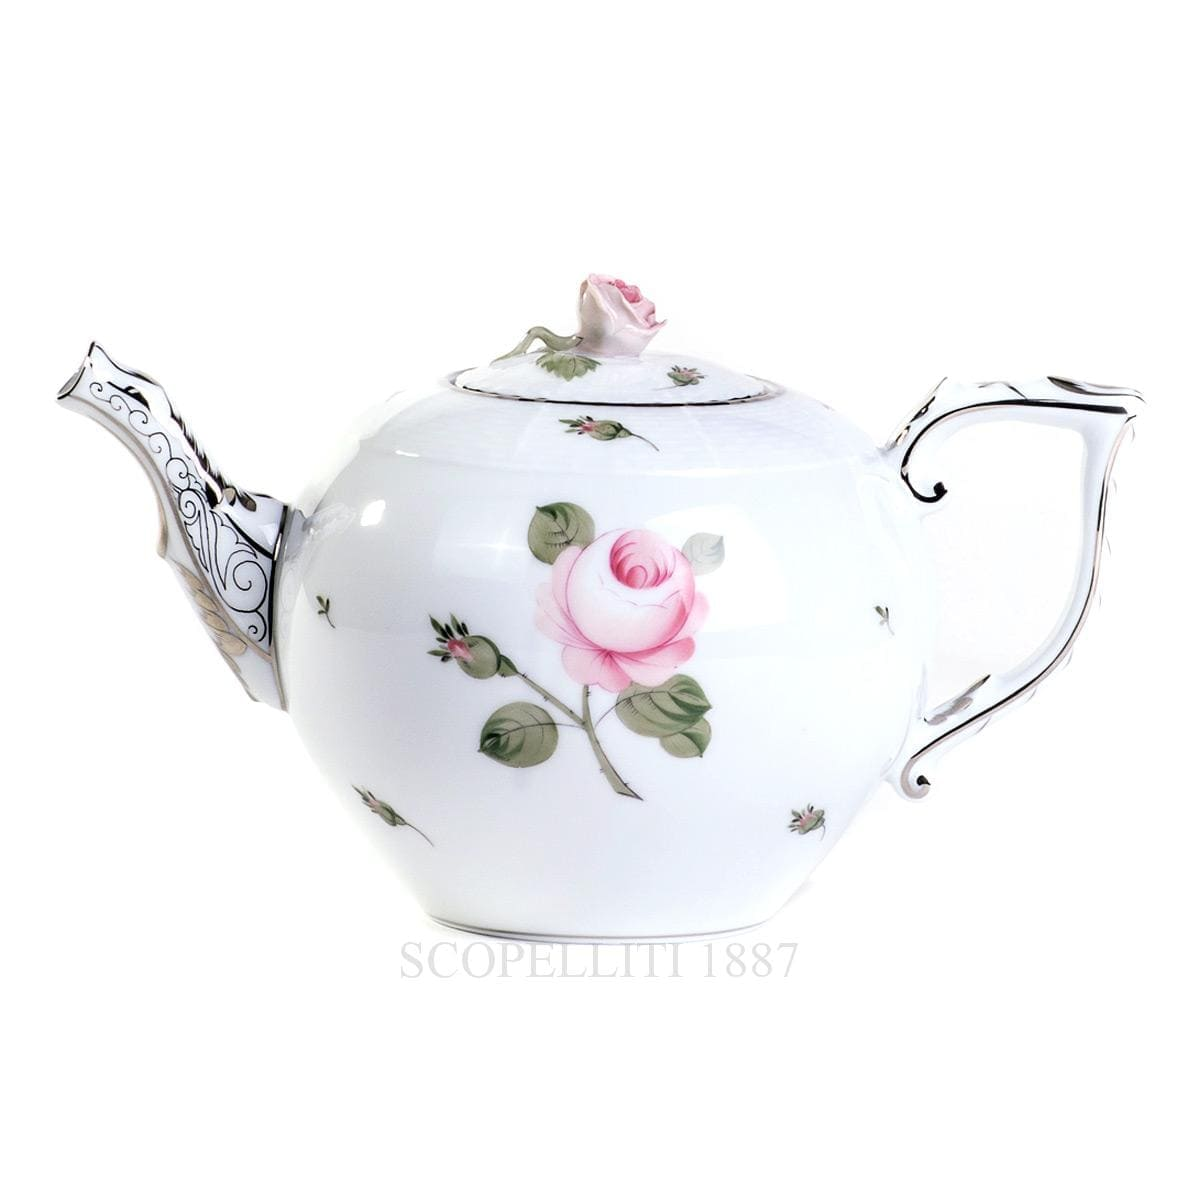 herend handpainted porcelain viennese rose platinum teapot with rose